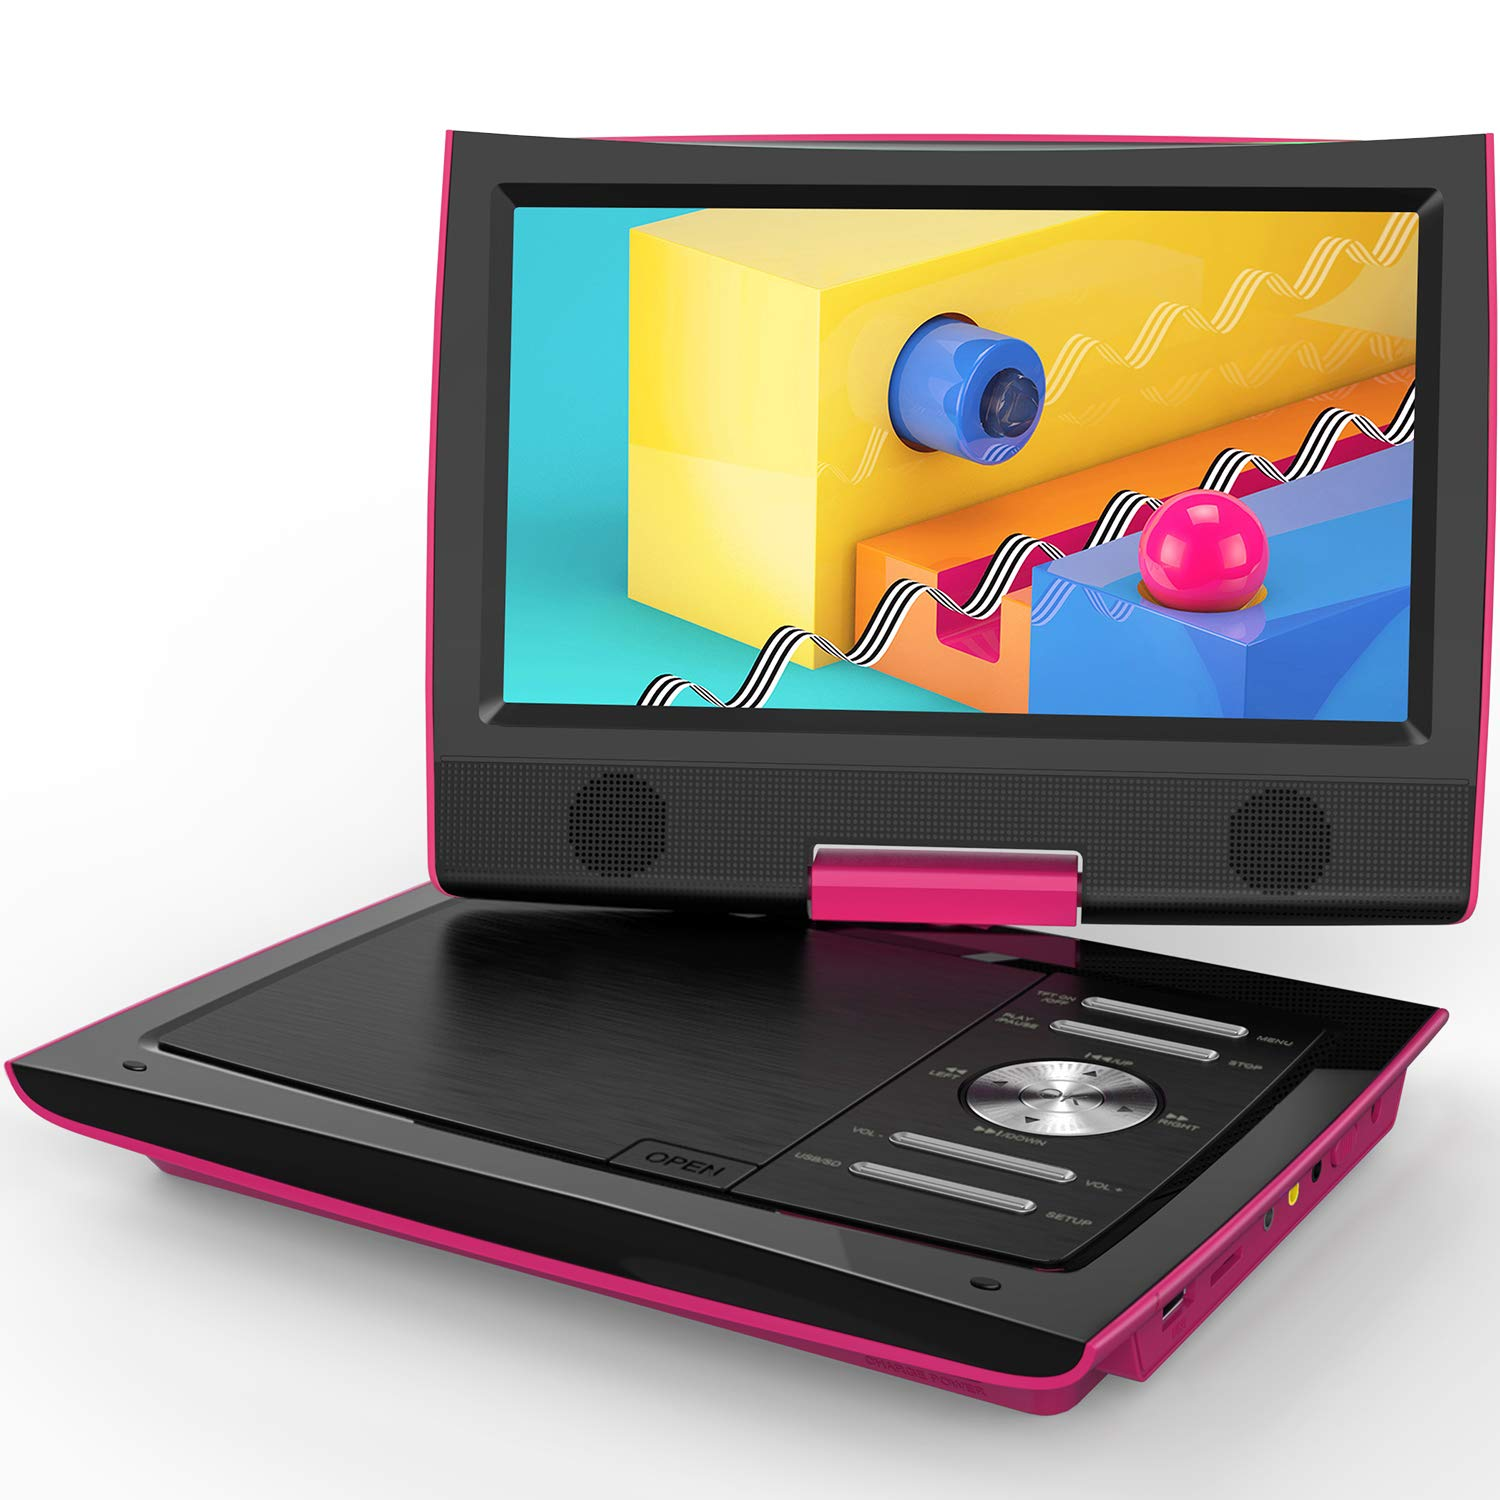 ieGeek 11'' Portable DVD Player with Dual Earphone Jack, 360° Swivel Screen, 5 Hrs Rechargeable Battery, Supports SD Card/USB/CD/DVD and Region Free, Remote Controller, Pink